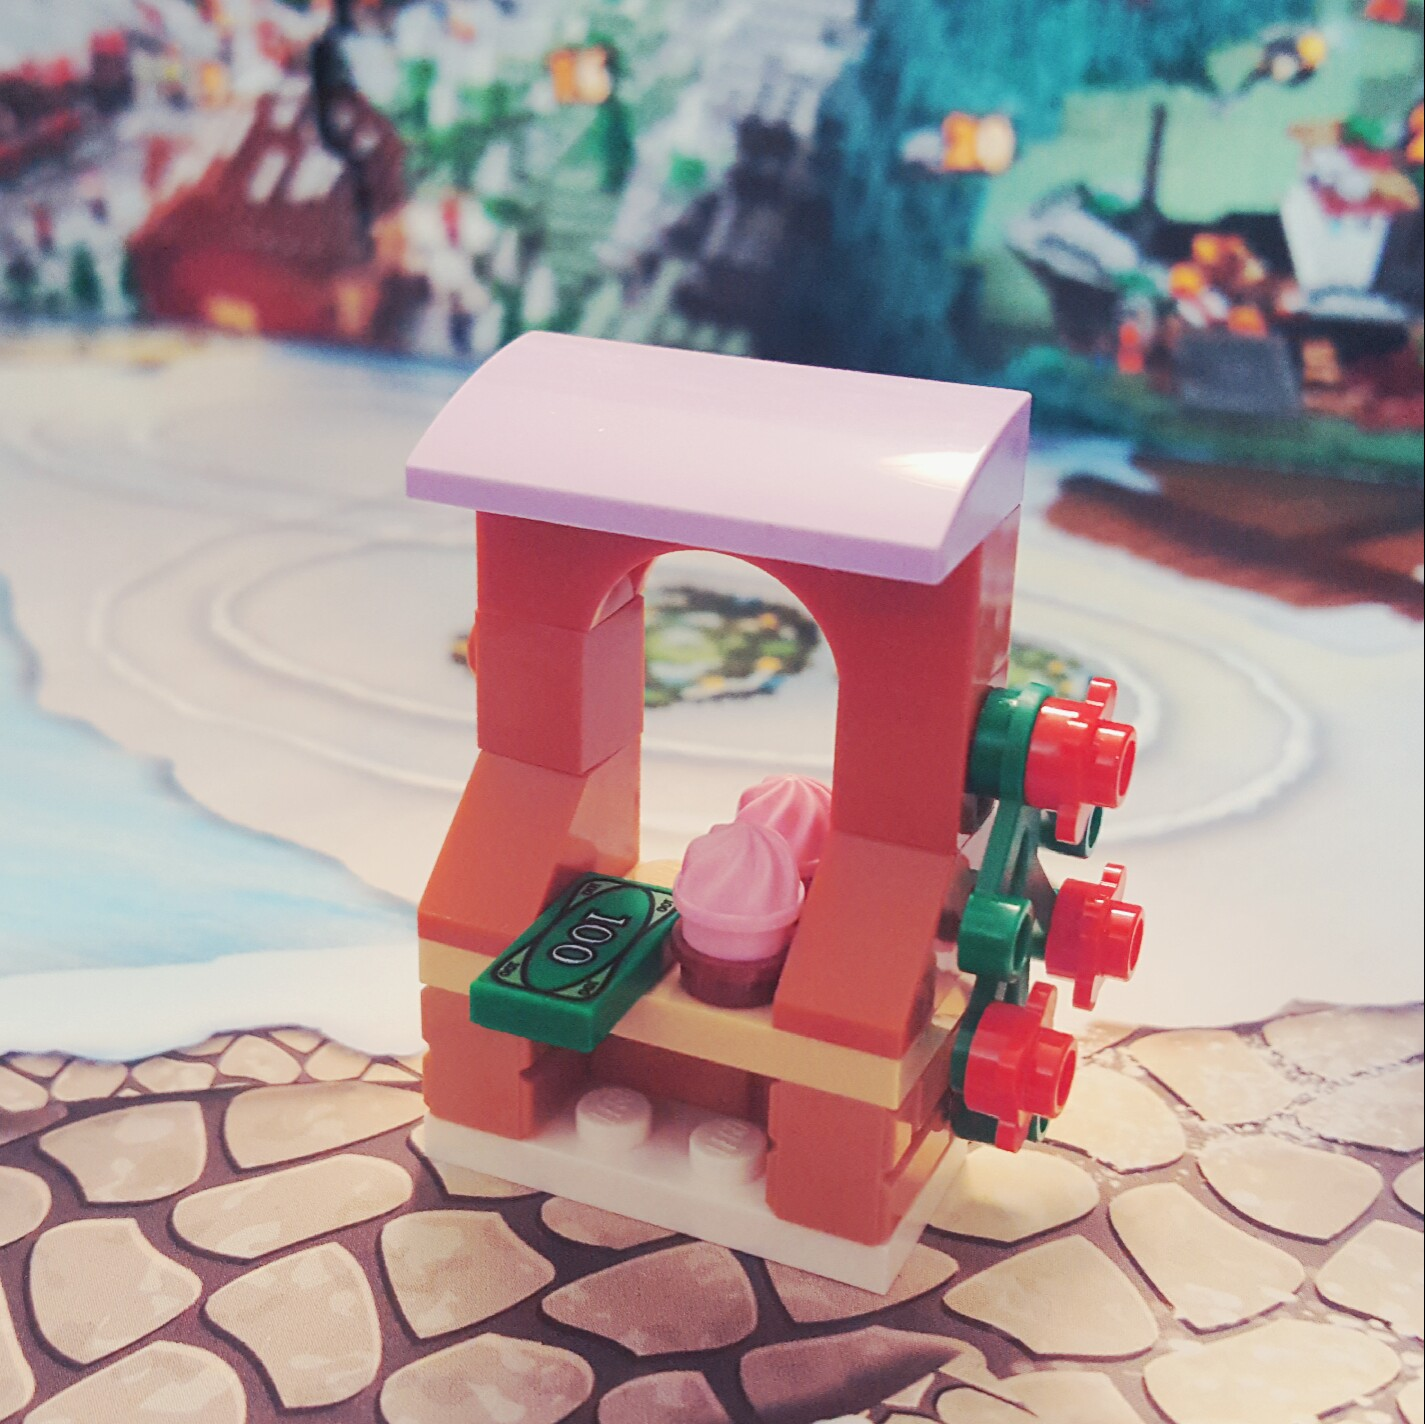 """""""Cupcakes! Cupcakes! Get your cupcakes here!"""" - Day 13 Cupcake Stand from LEGO Friends Advent Calendar"""